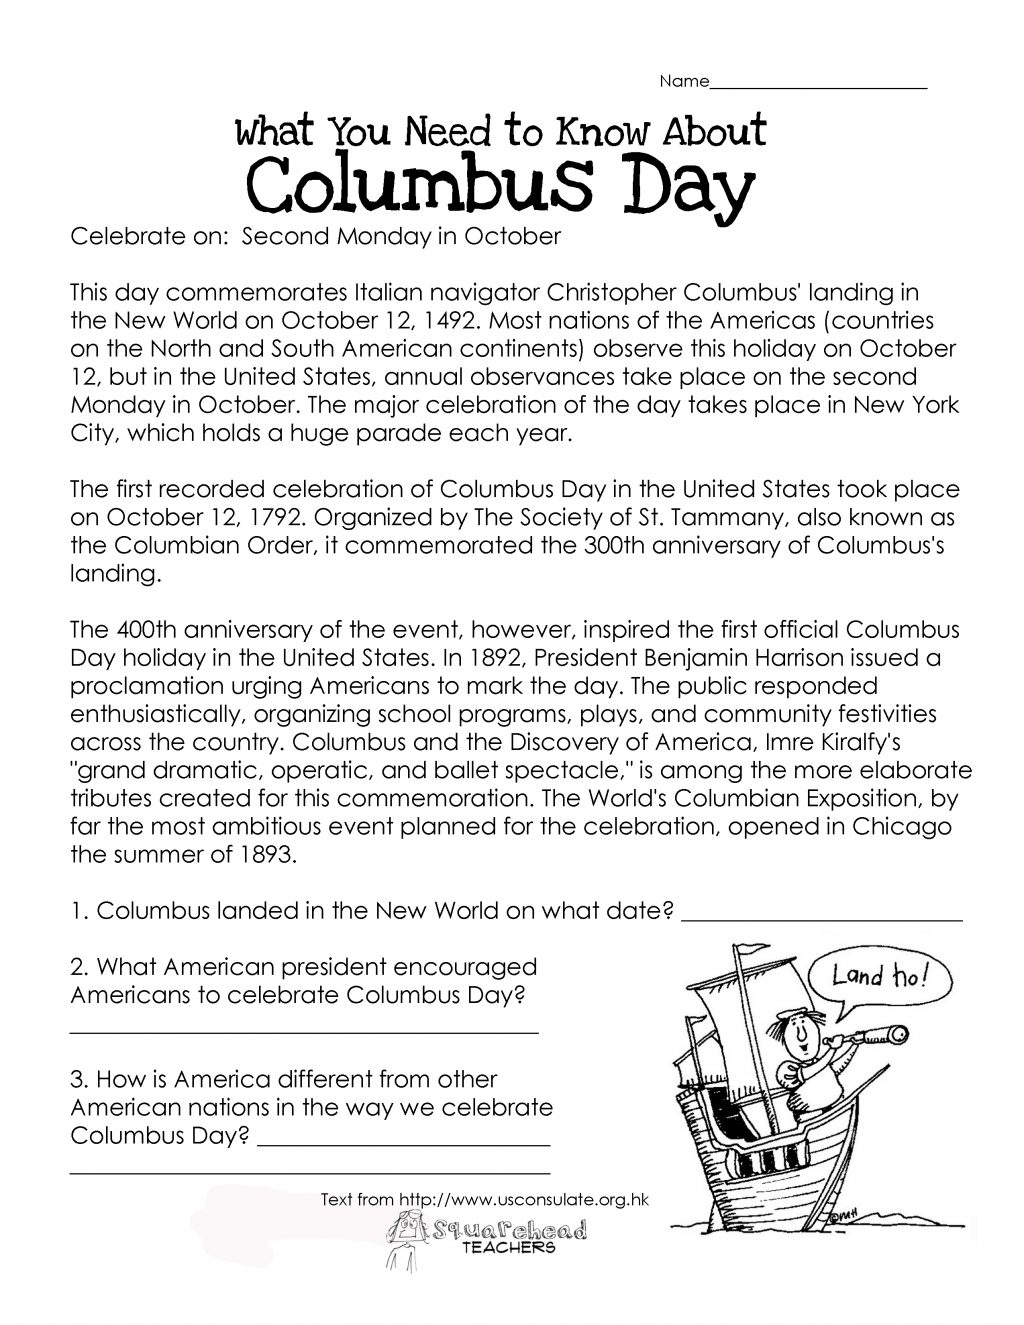 Columbus Day Free Reading Comprehension Worksheets For Thirdrs